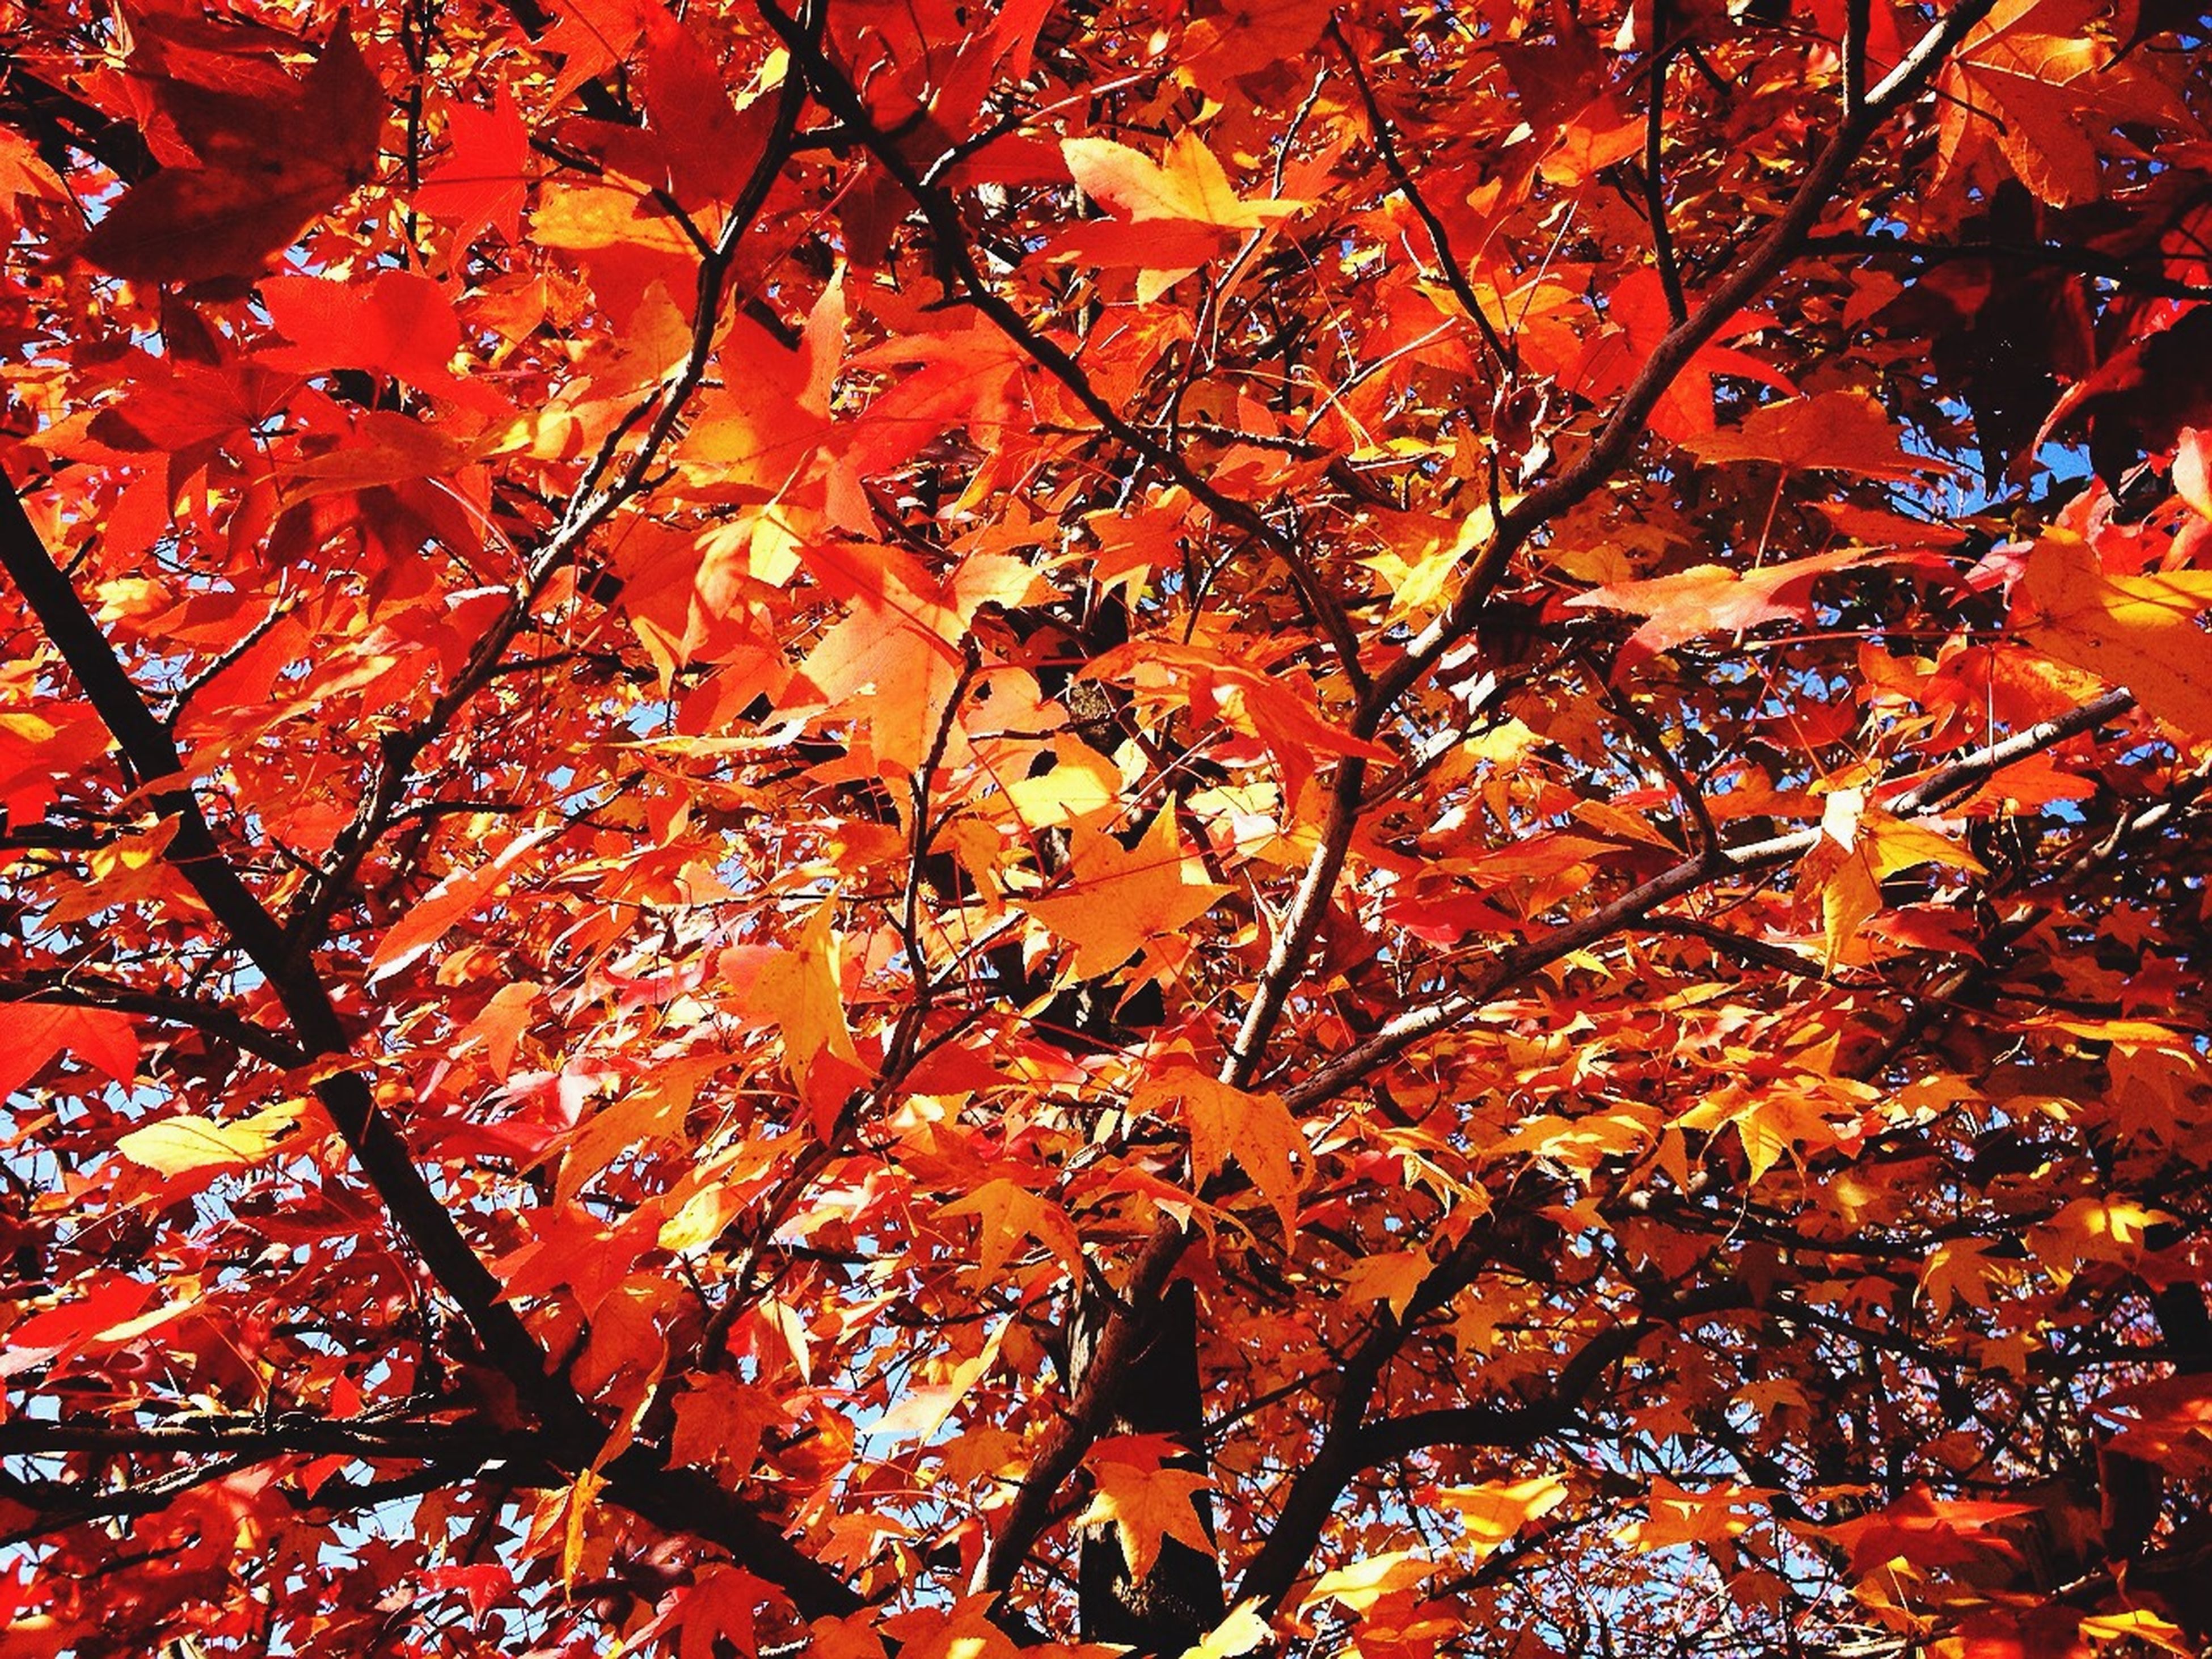 autumn, change, tree, branch, season, low angle view, leaf, orange color, growth, nature, beauty in nature, red, full frame, tranquility, leaves, backgrounds, outdoors, day, no people, maple leaf